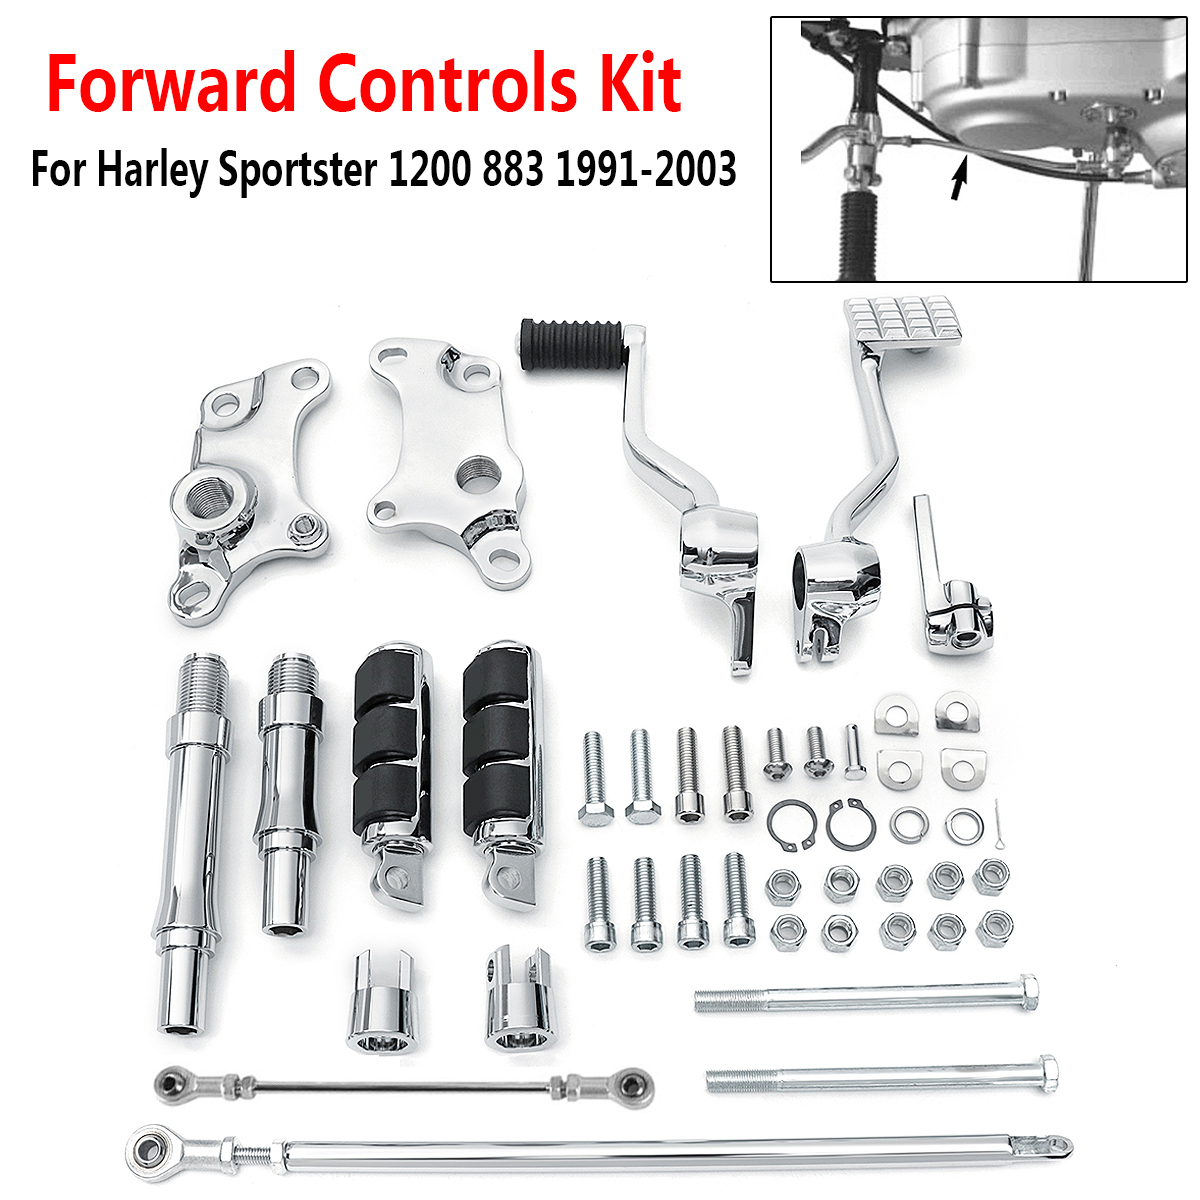 1991-2003 Forward Controls Pegs Levers Linkage Kit for Harley Sportster 1200 883 Foot Rests complete forward control w pegs lever linkage for harley xl sportster 2014 2018 iron883 xl1200 motorcycle